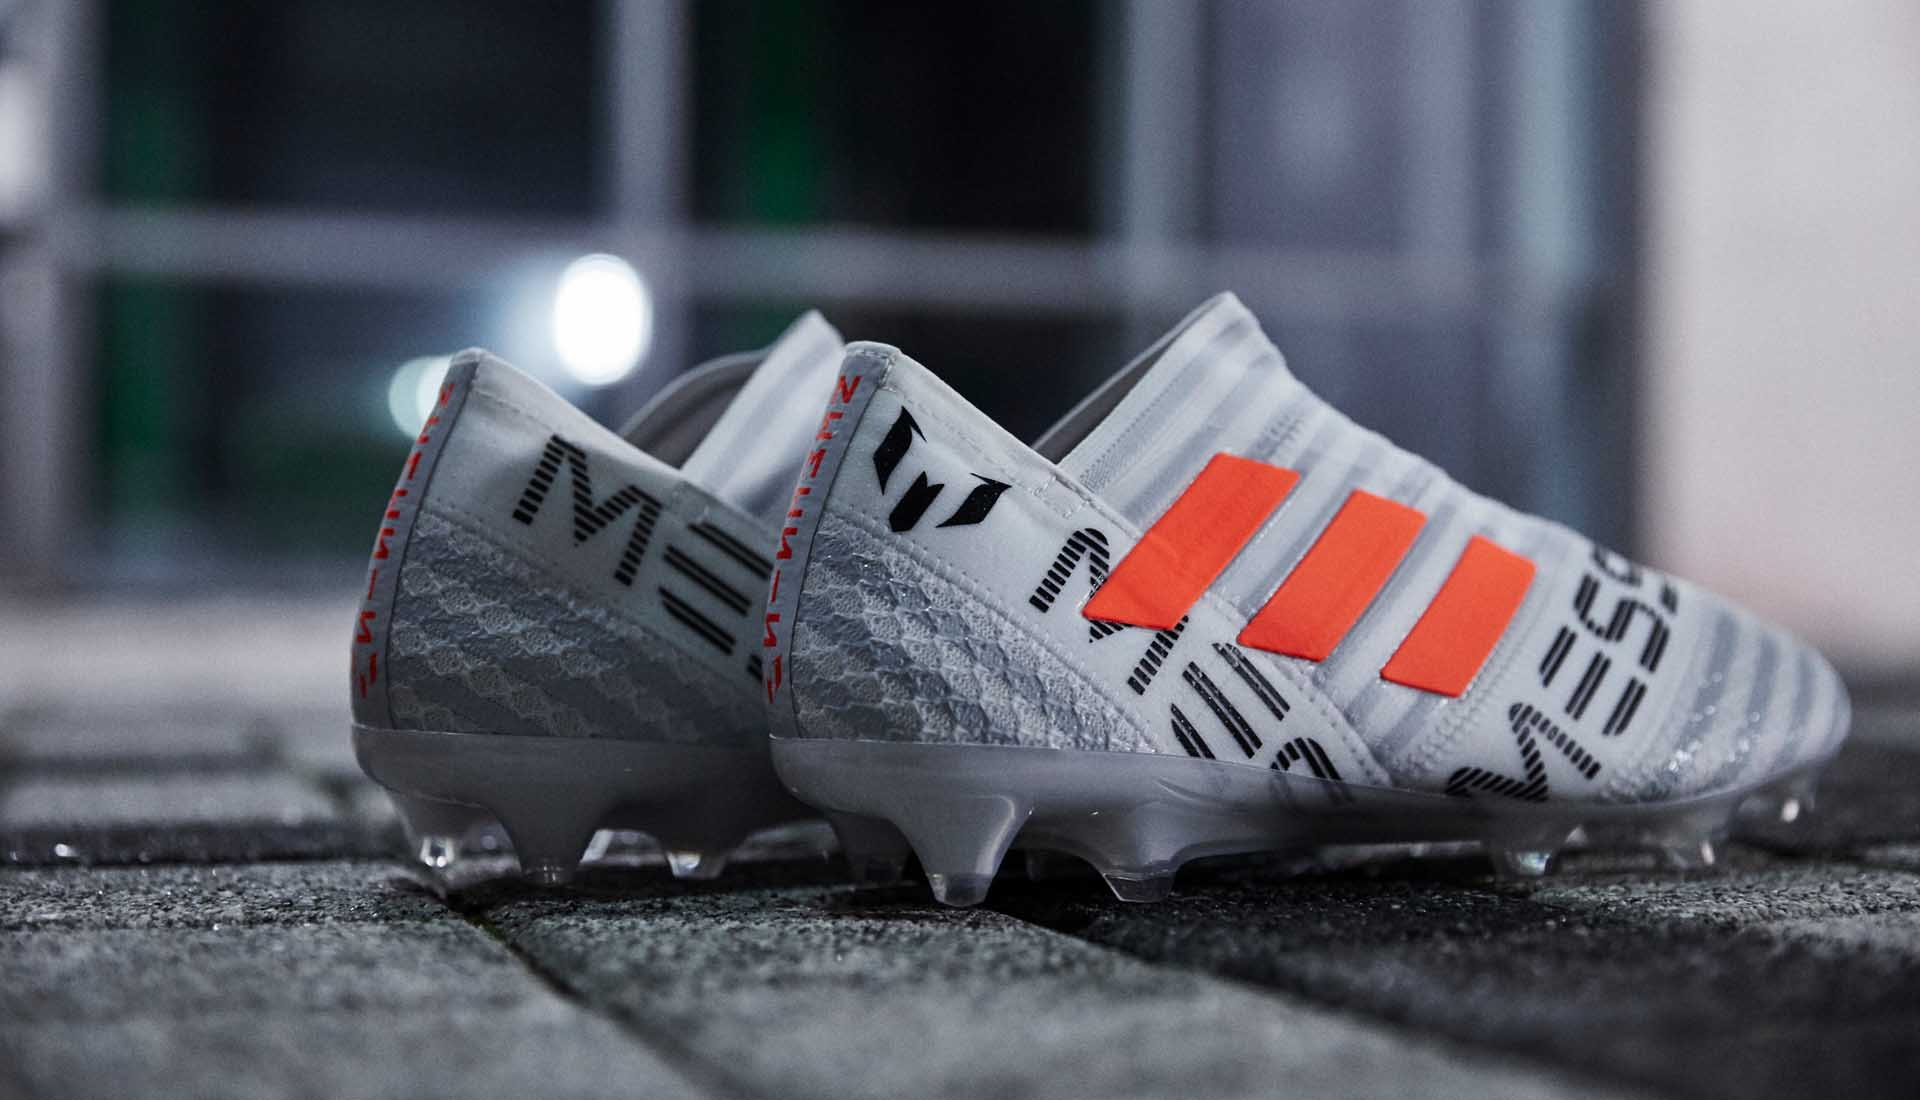 chaussure-adidas-football-nemeziz-messi-pyro-storm-octobre-2017-4